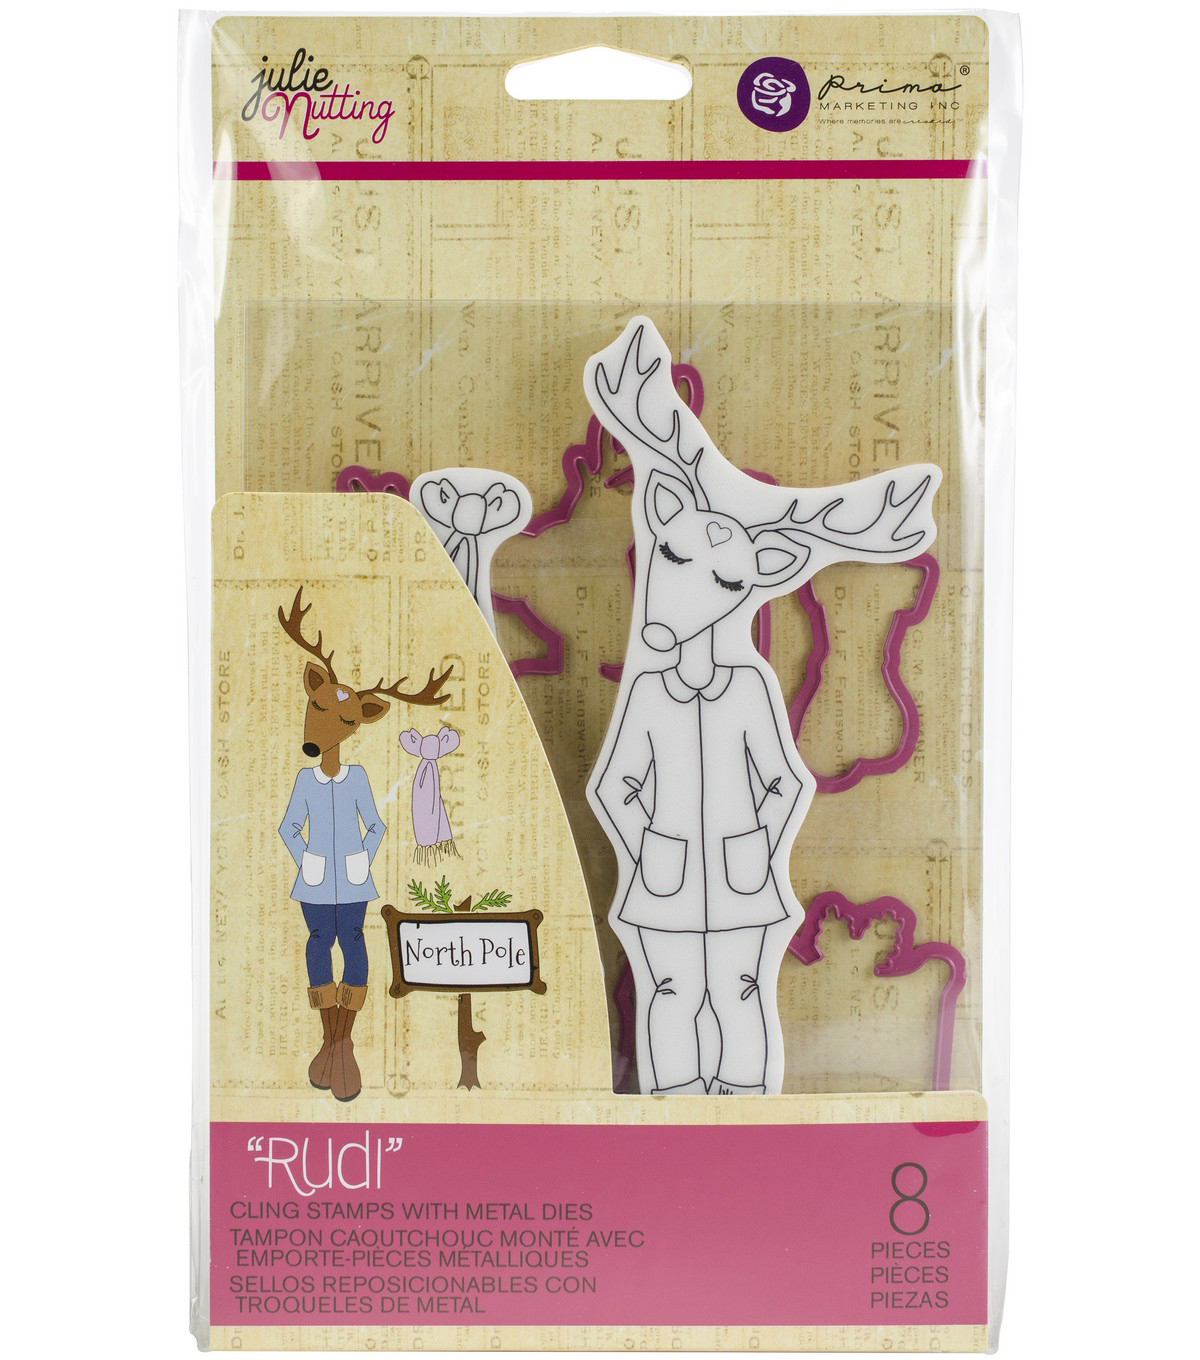 Julie Nutting 8 pk Cling Stamps with Metal Dies-Rudi